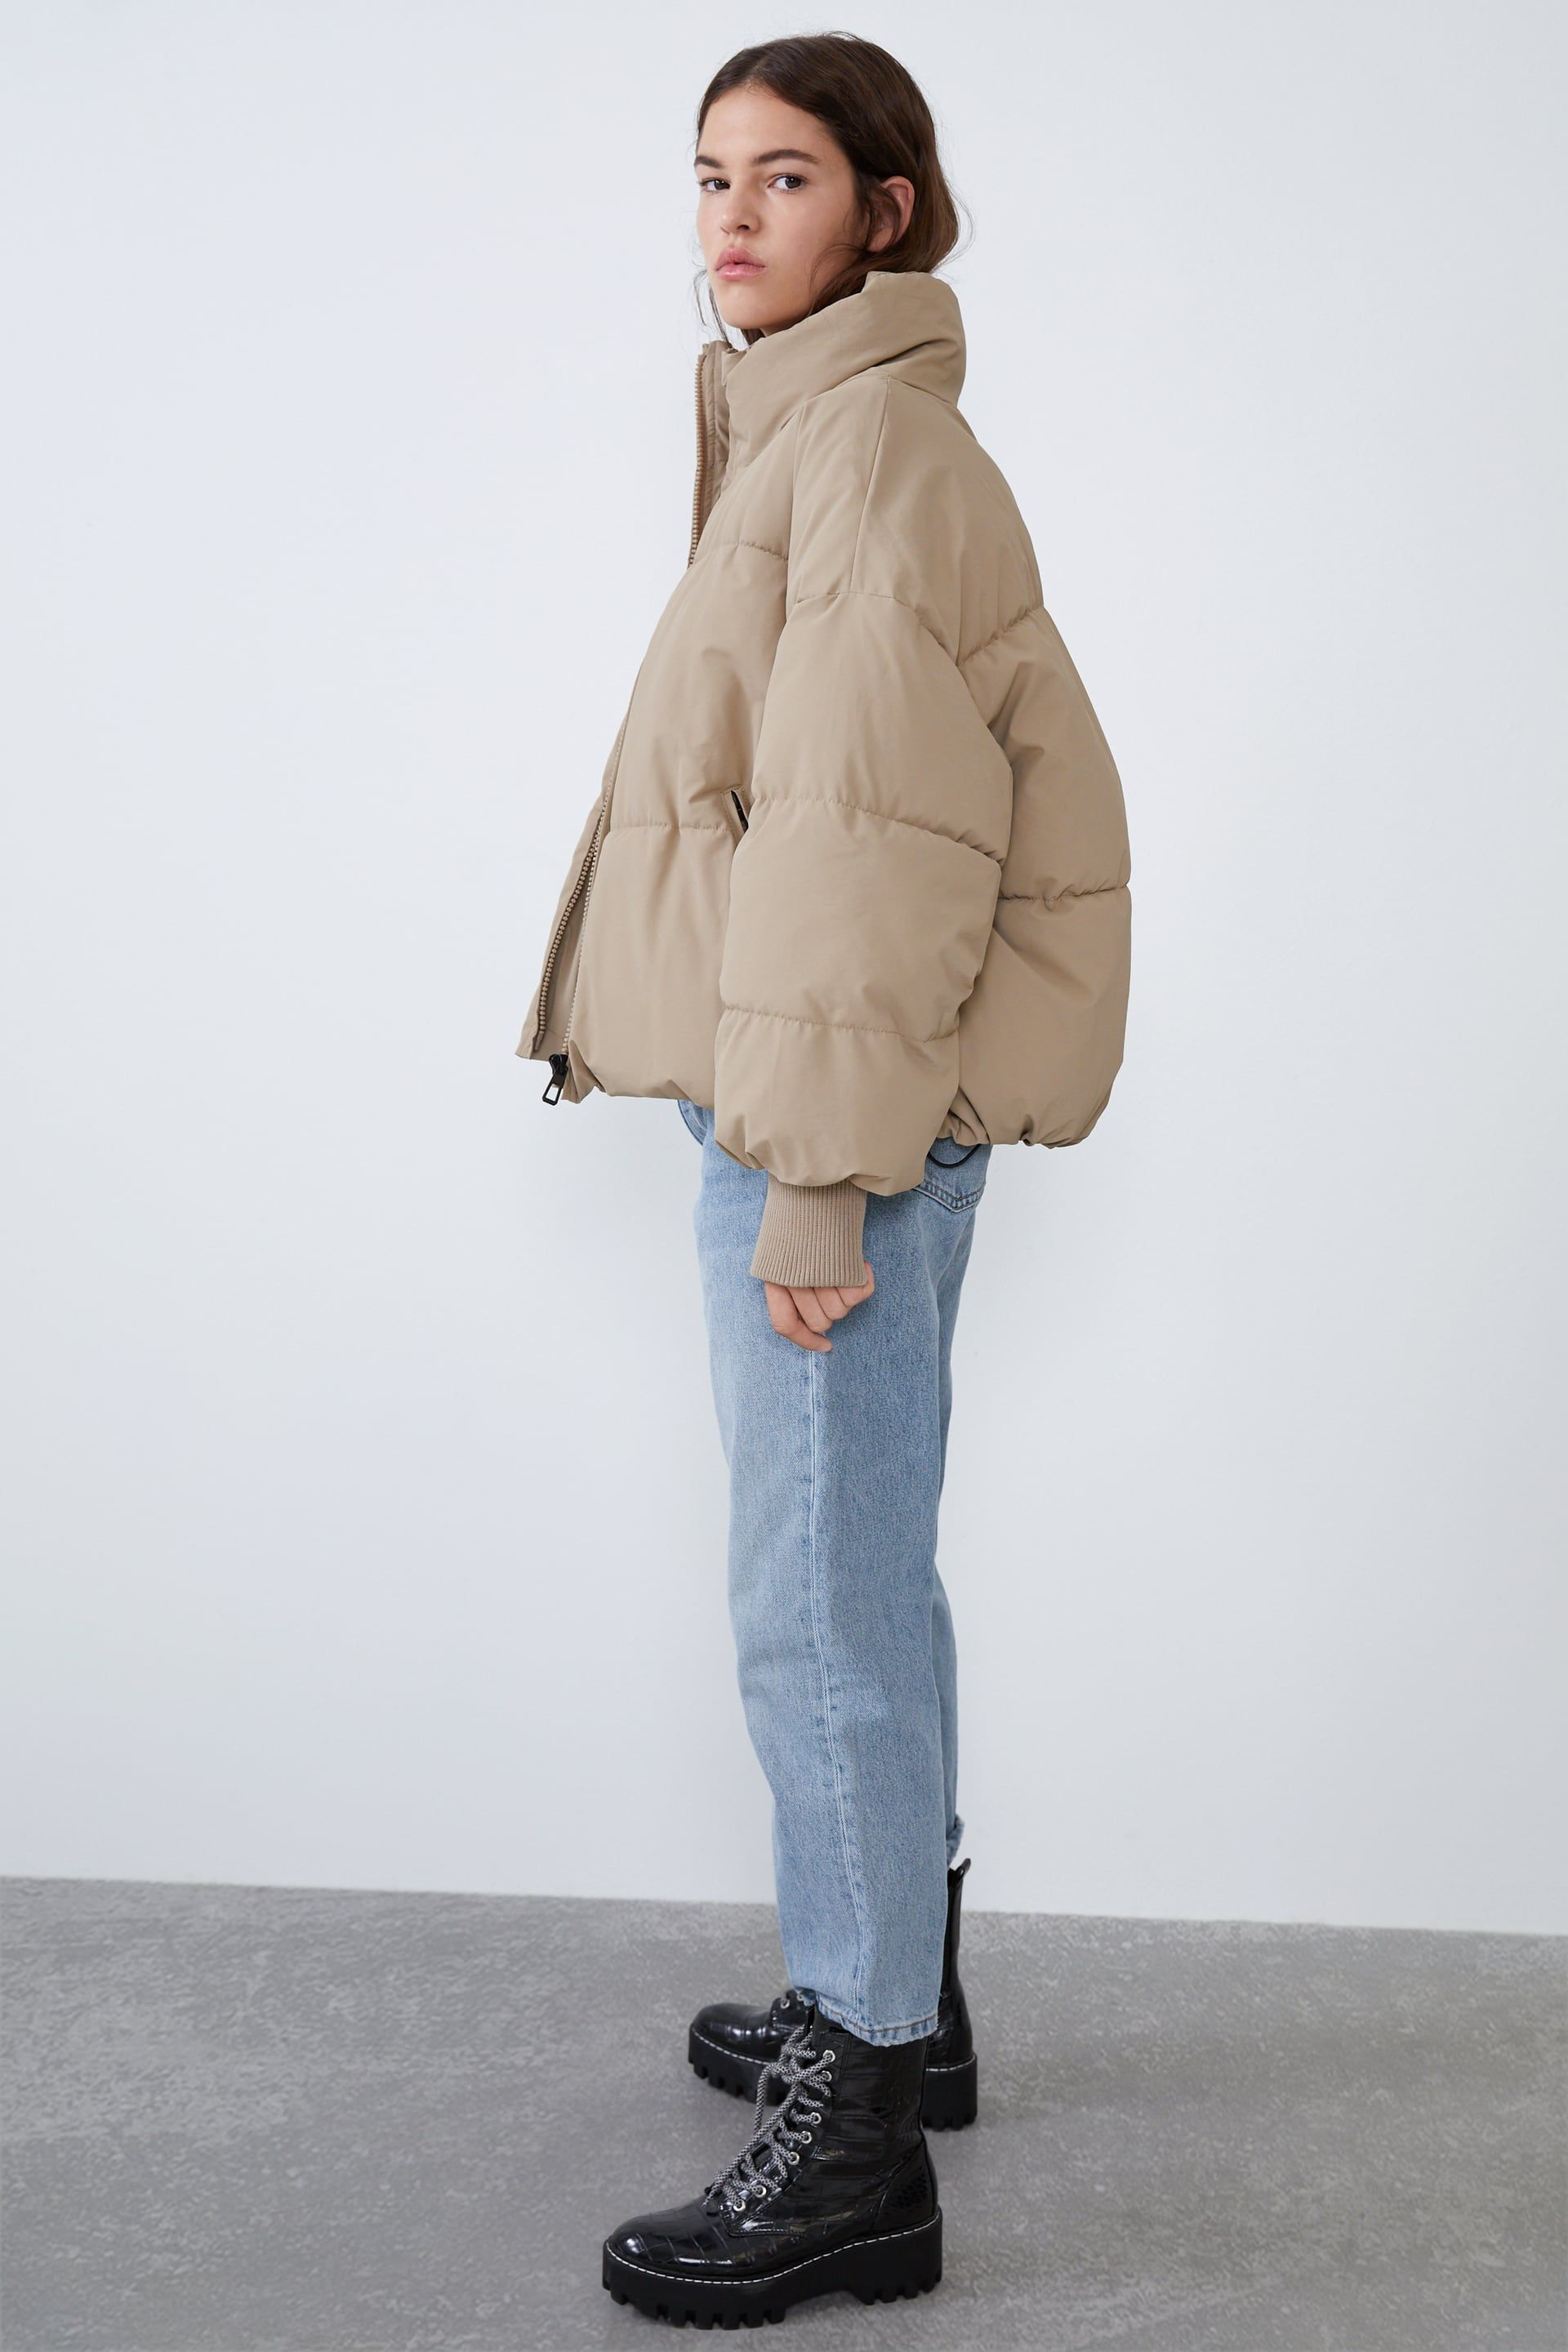 Oversized Puffer Jacket View All Coats Woman Zara United States Casual Winter Outfits Winter Fashion Outfits Winter Outfits [ 2880 x 1920 Pixel ]